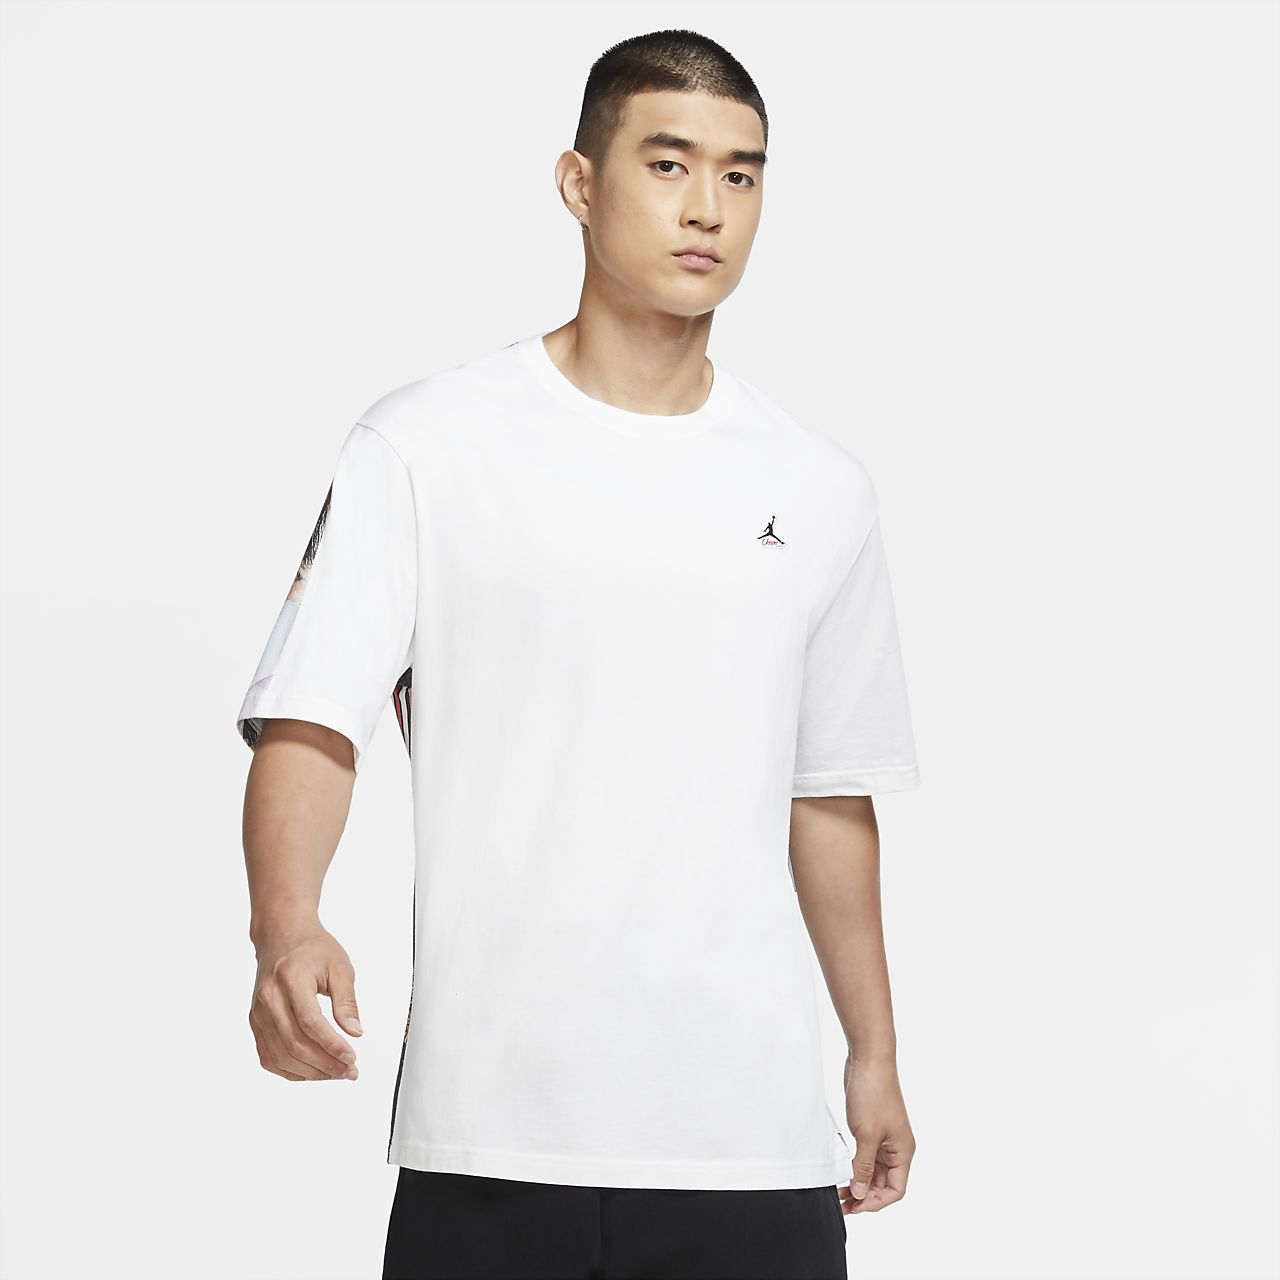 781f8c9eefd914 Jordan Jumpman Air Men s Fleece Shorts. Nike.com LU